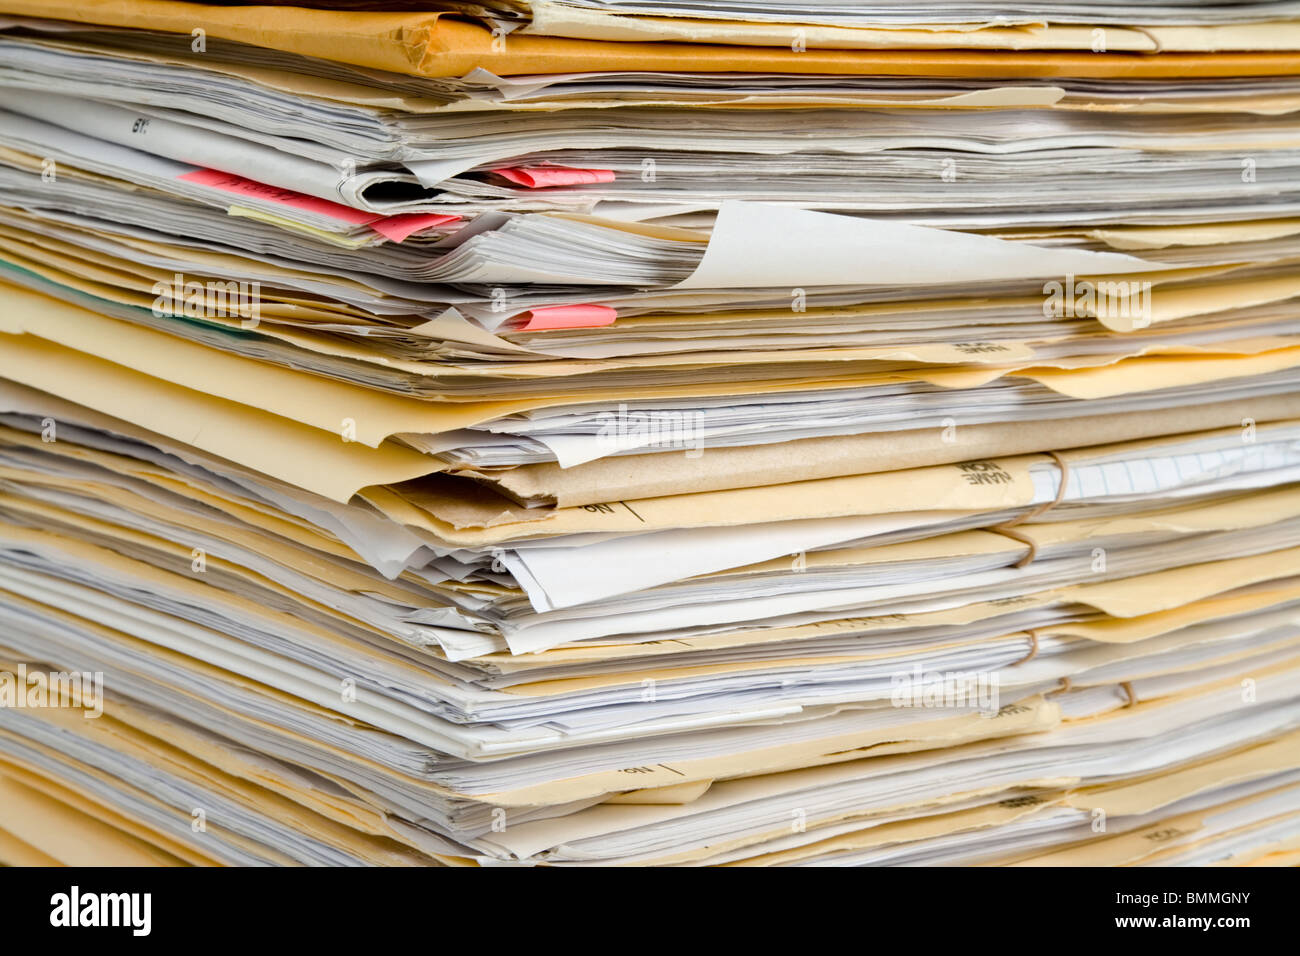 File Stack, file folder close up for background - Stock Image